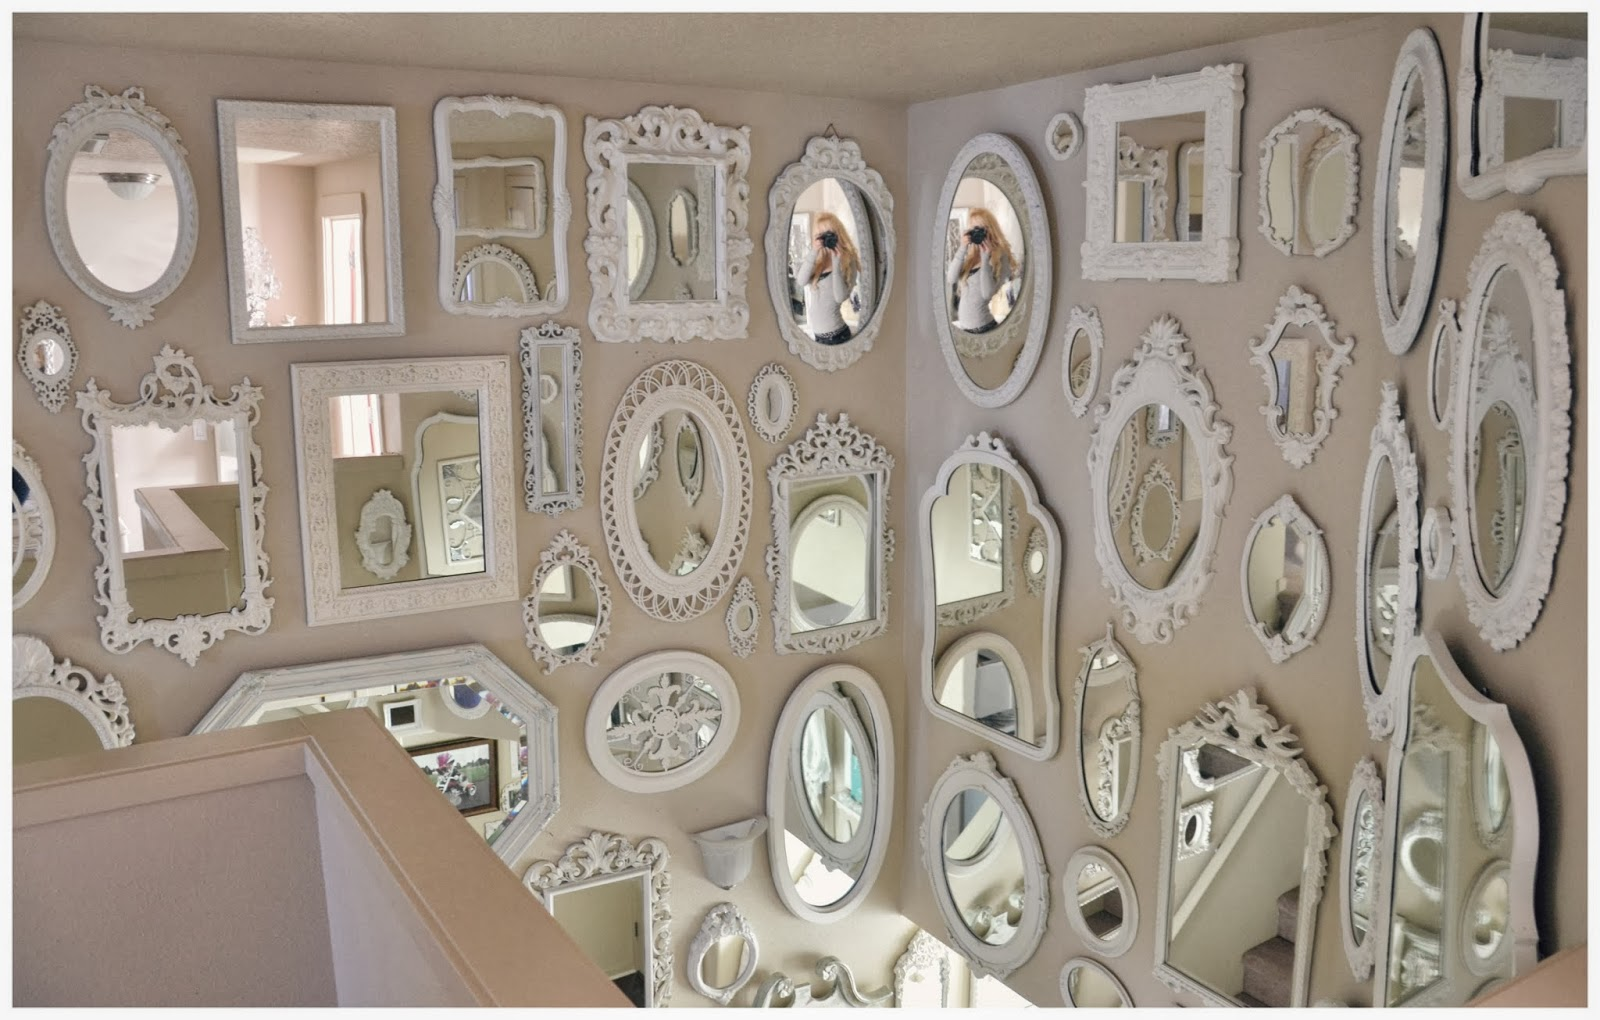 Wall of mirror